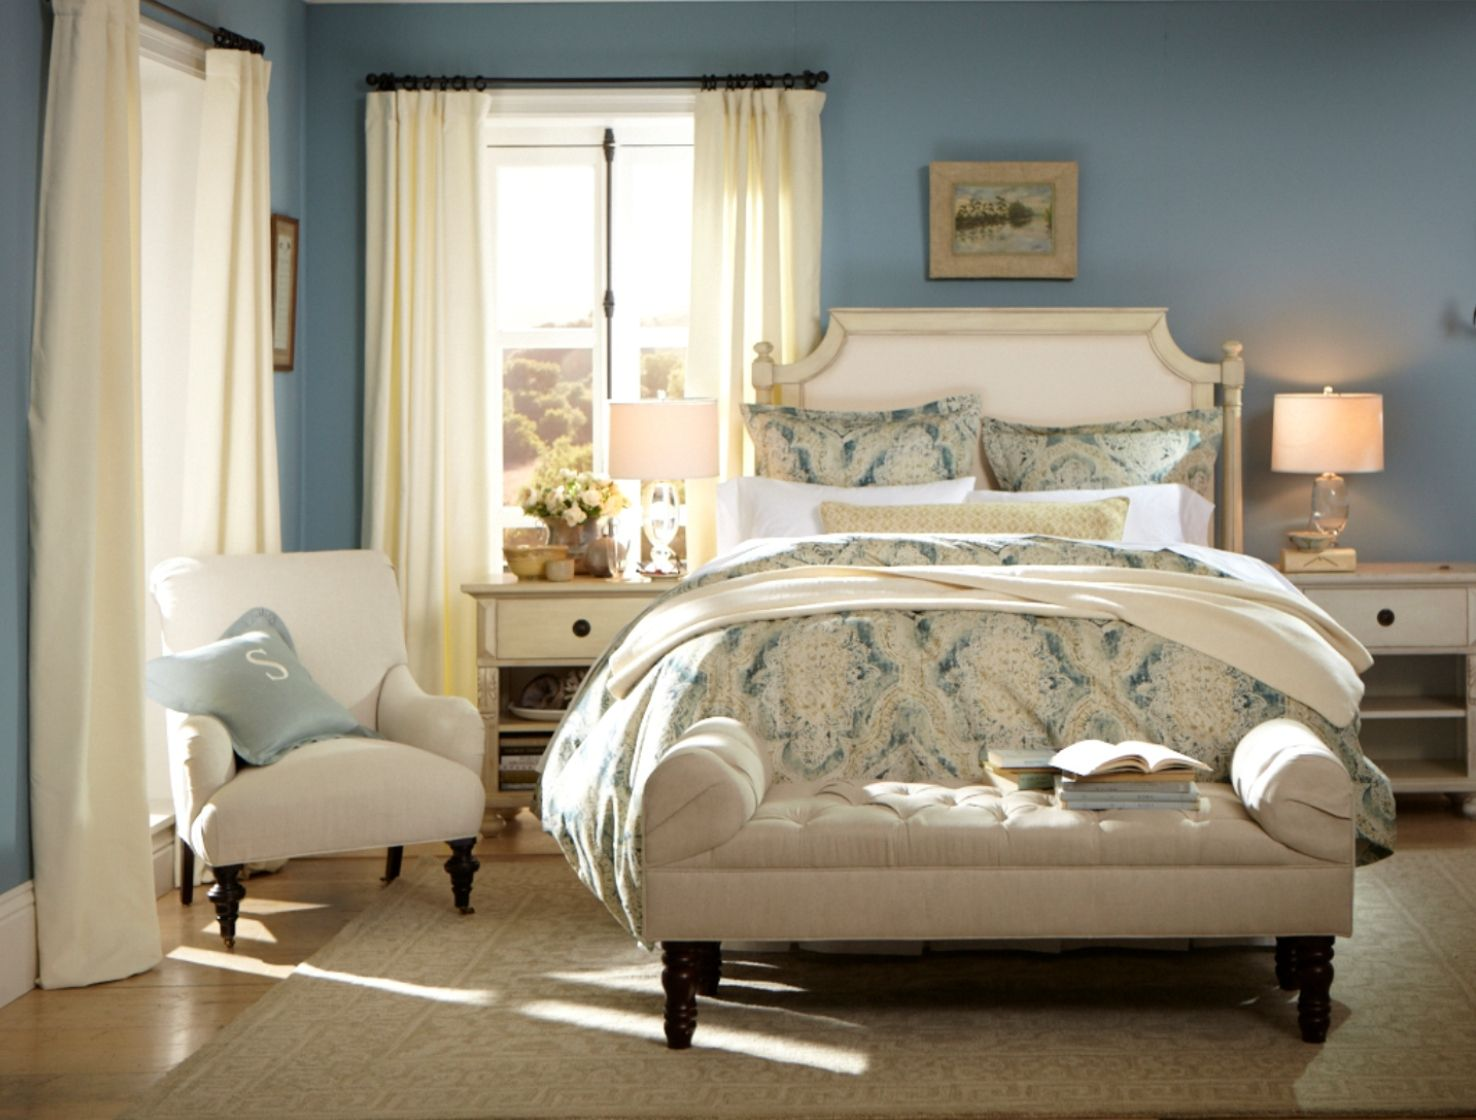 bedroom featuring paint color smokey blue sw 7604 from